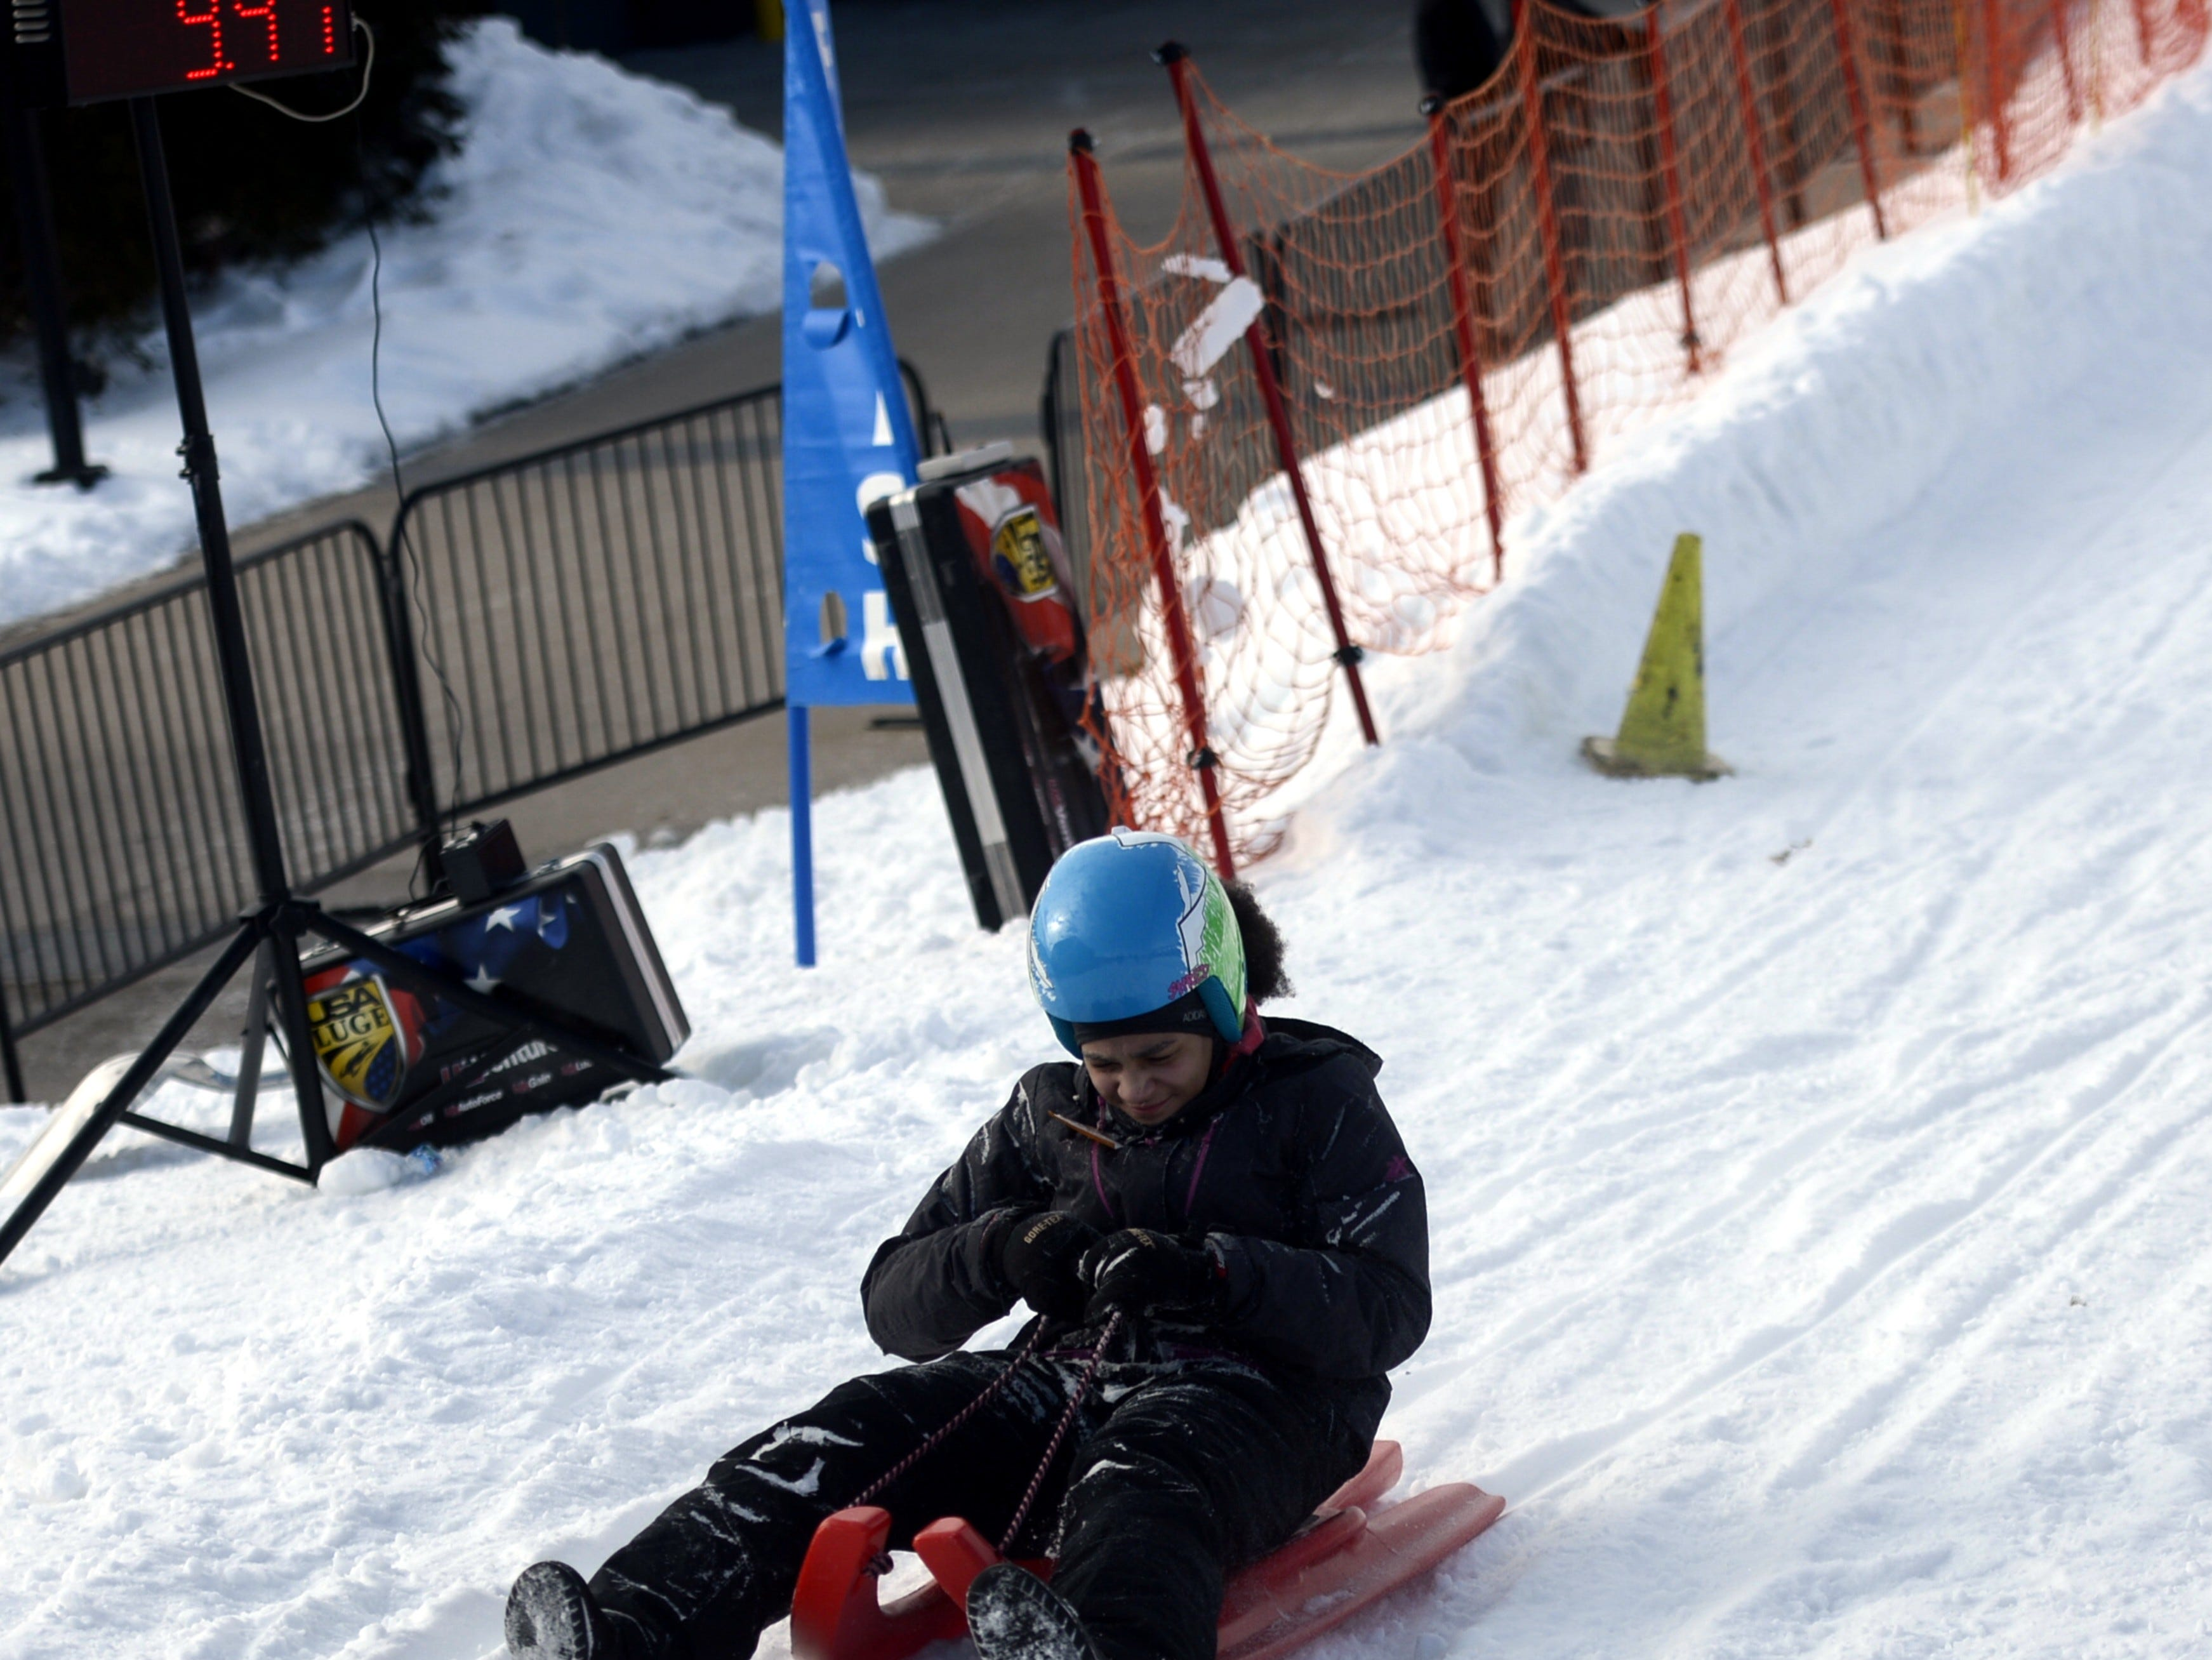 A rider tries the luge course on Airiens Hill in Titletown District during the Titletown Winter Games on Saturday, Feb. 16, 2019.